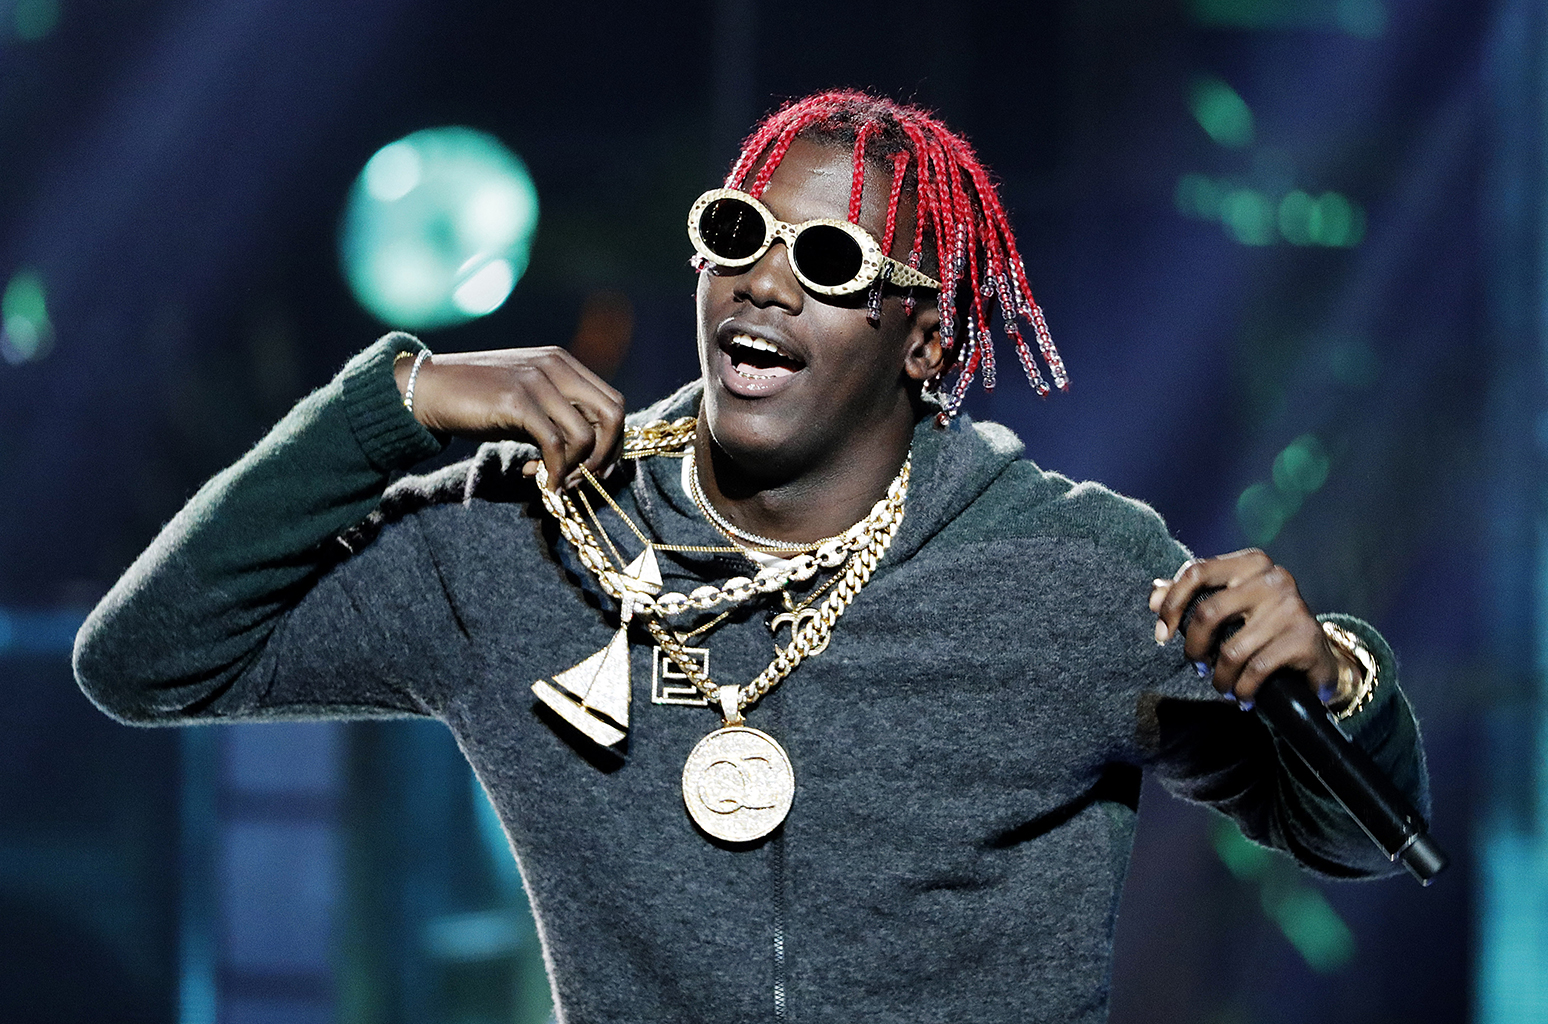 Lil Yachty Responds to Vic Mensa's 'What the F*ck Is a Lil Yachty?' Shot